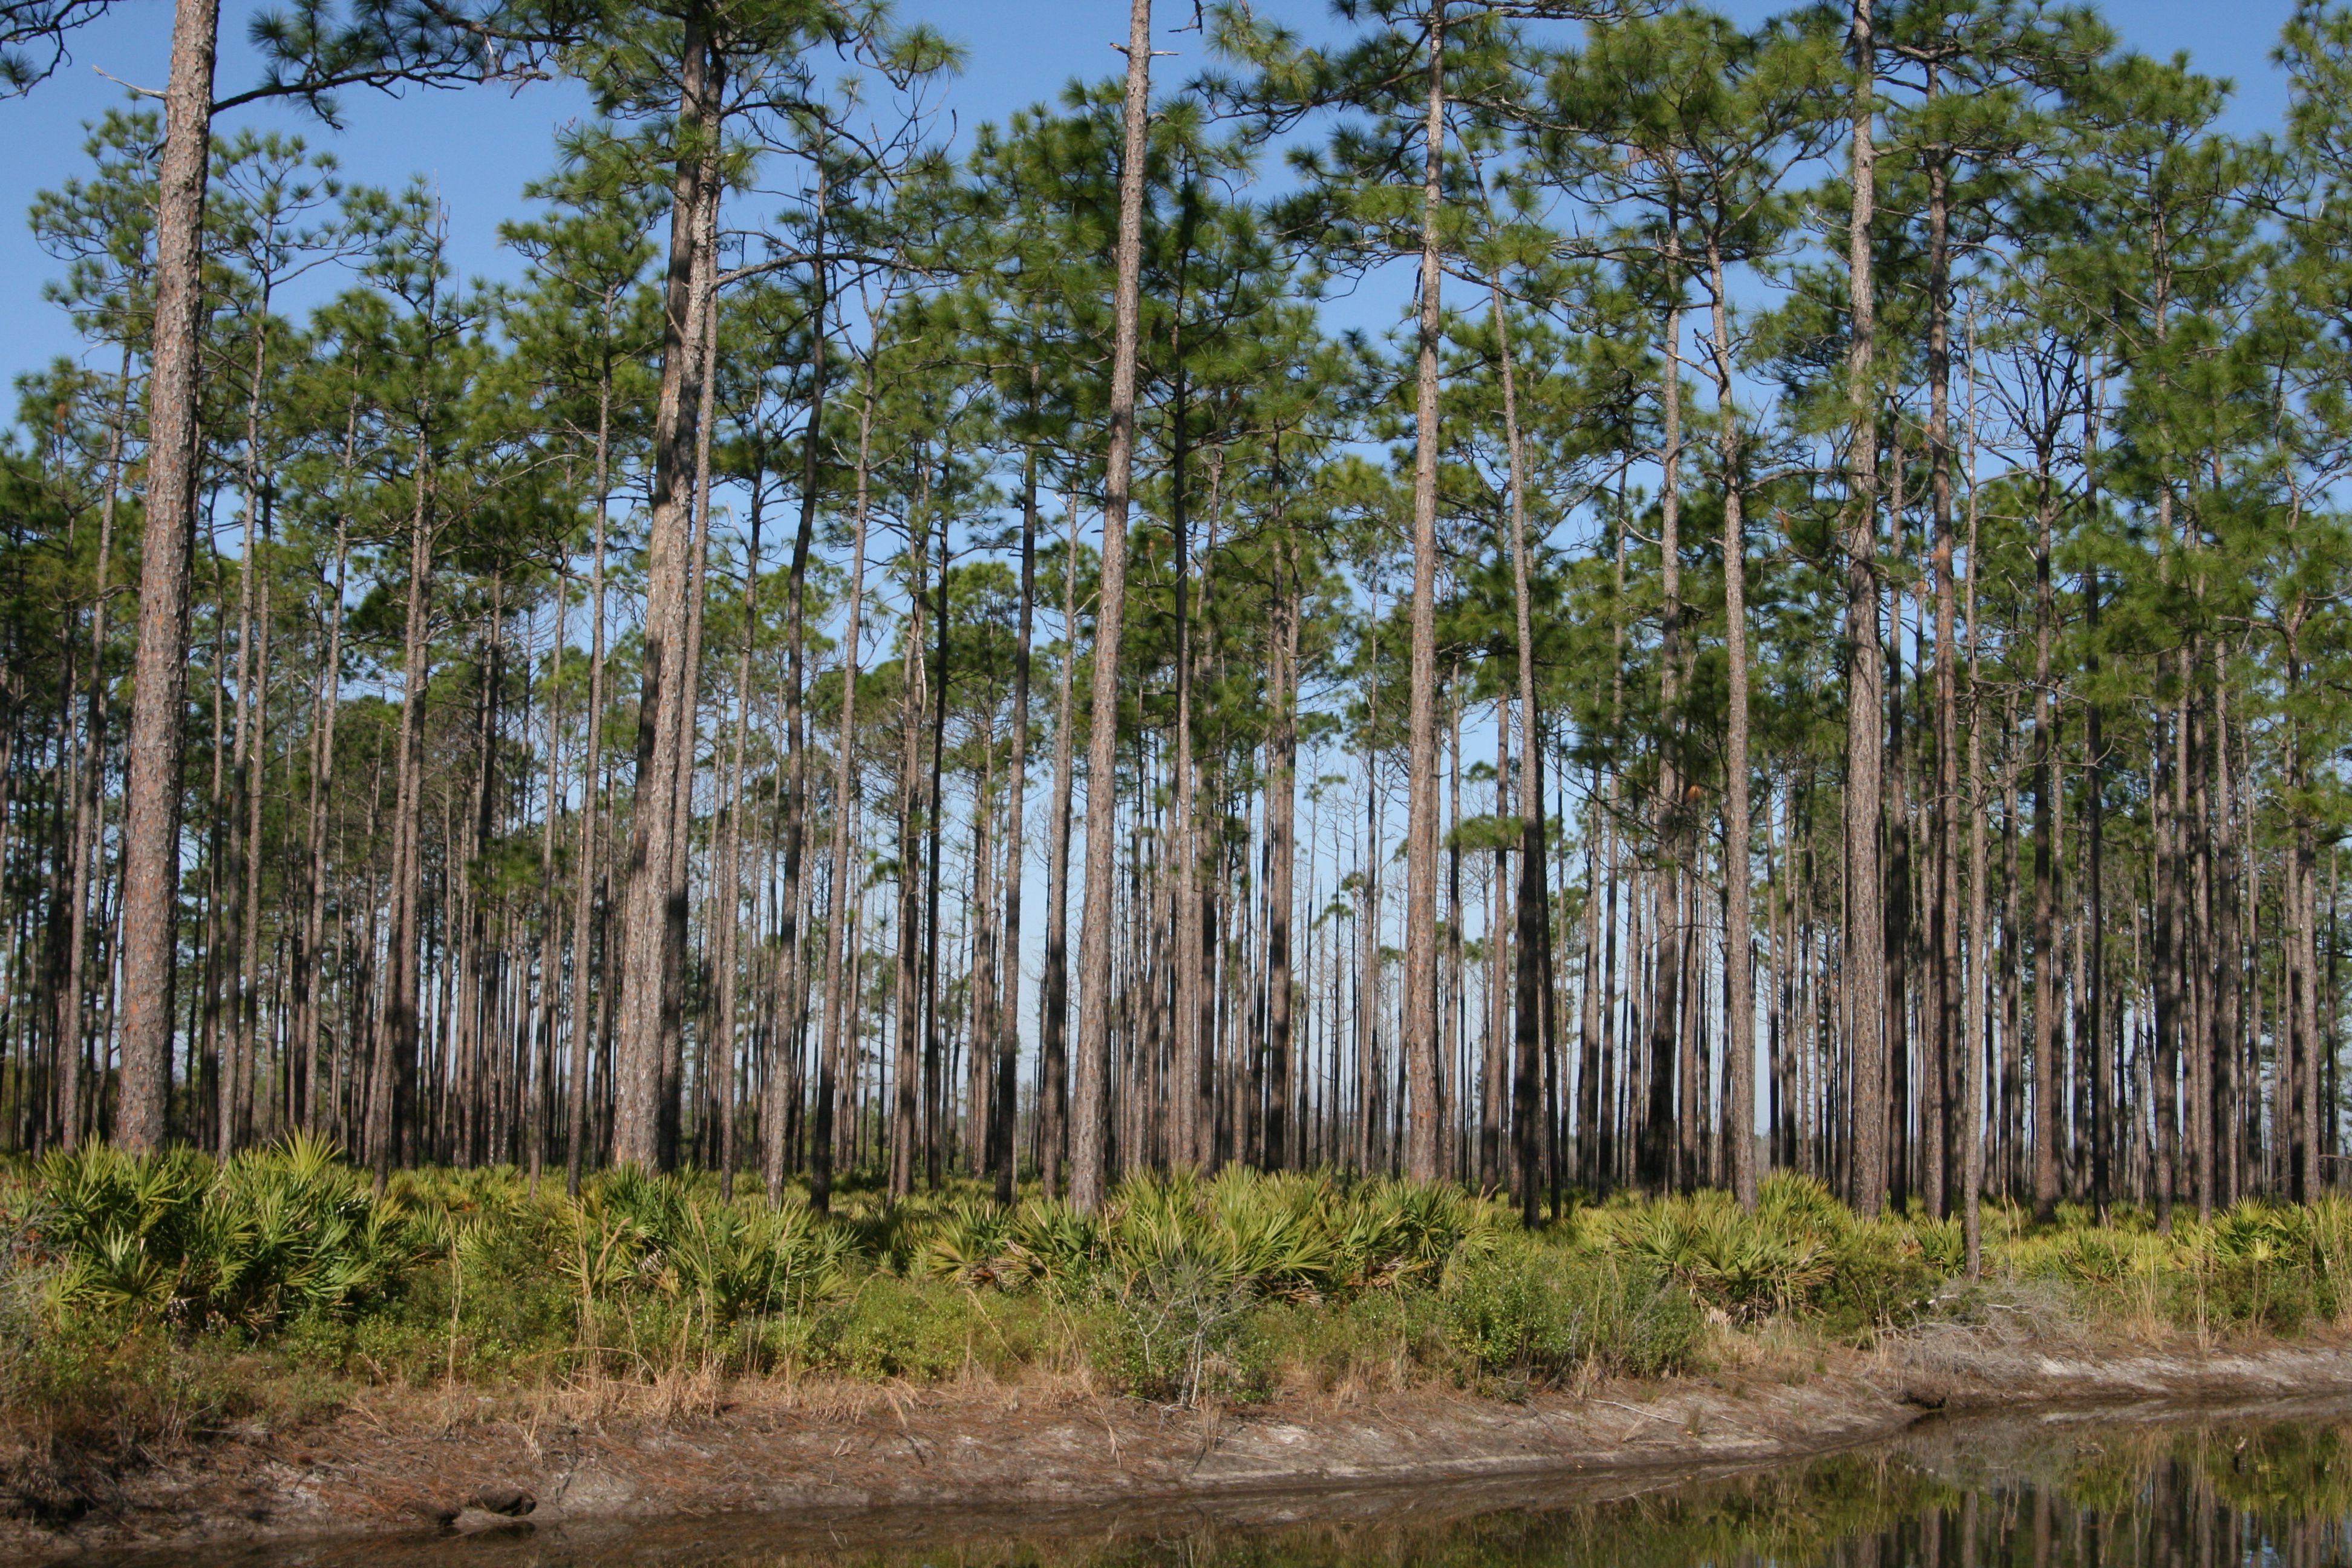 A forest of slash pine trees along a river.